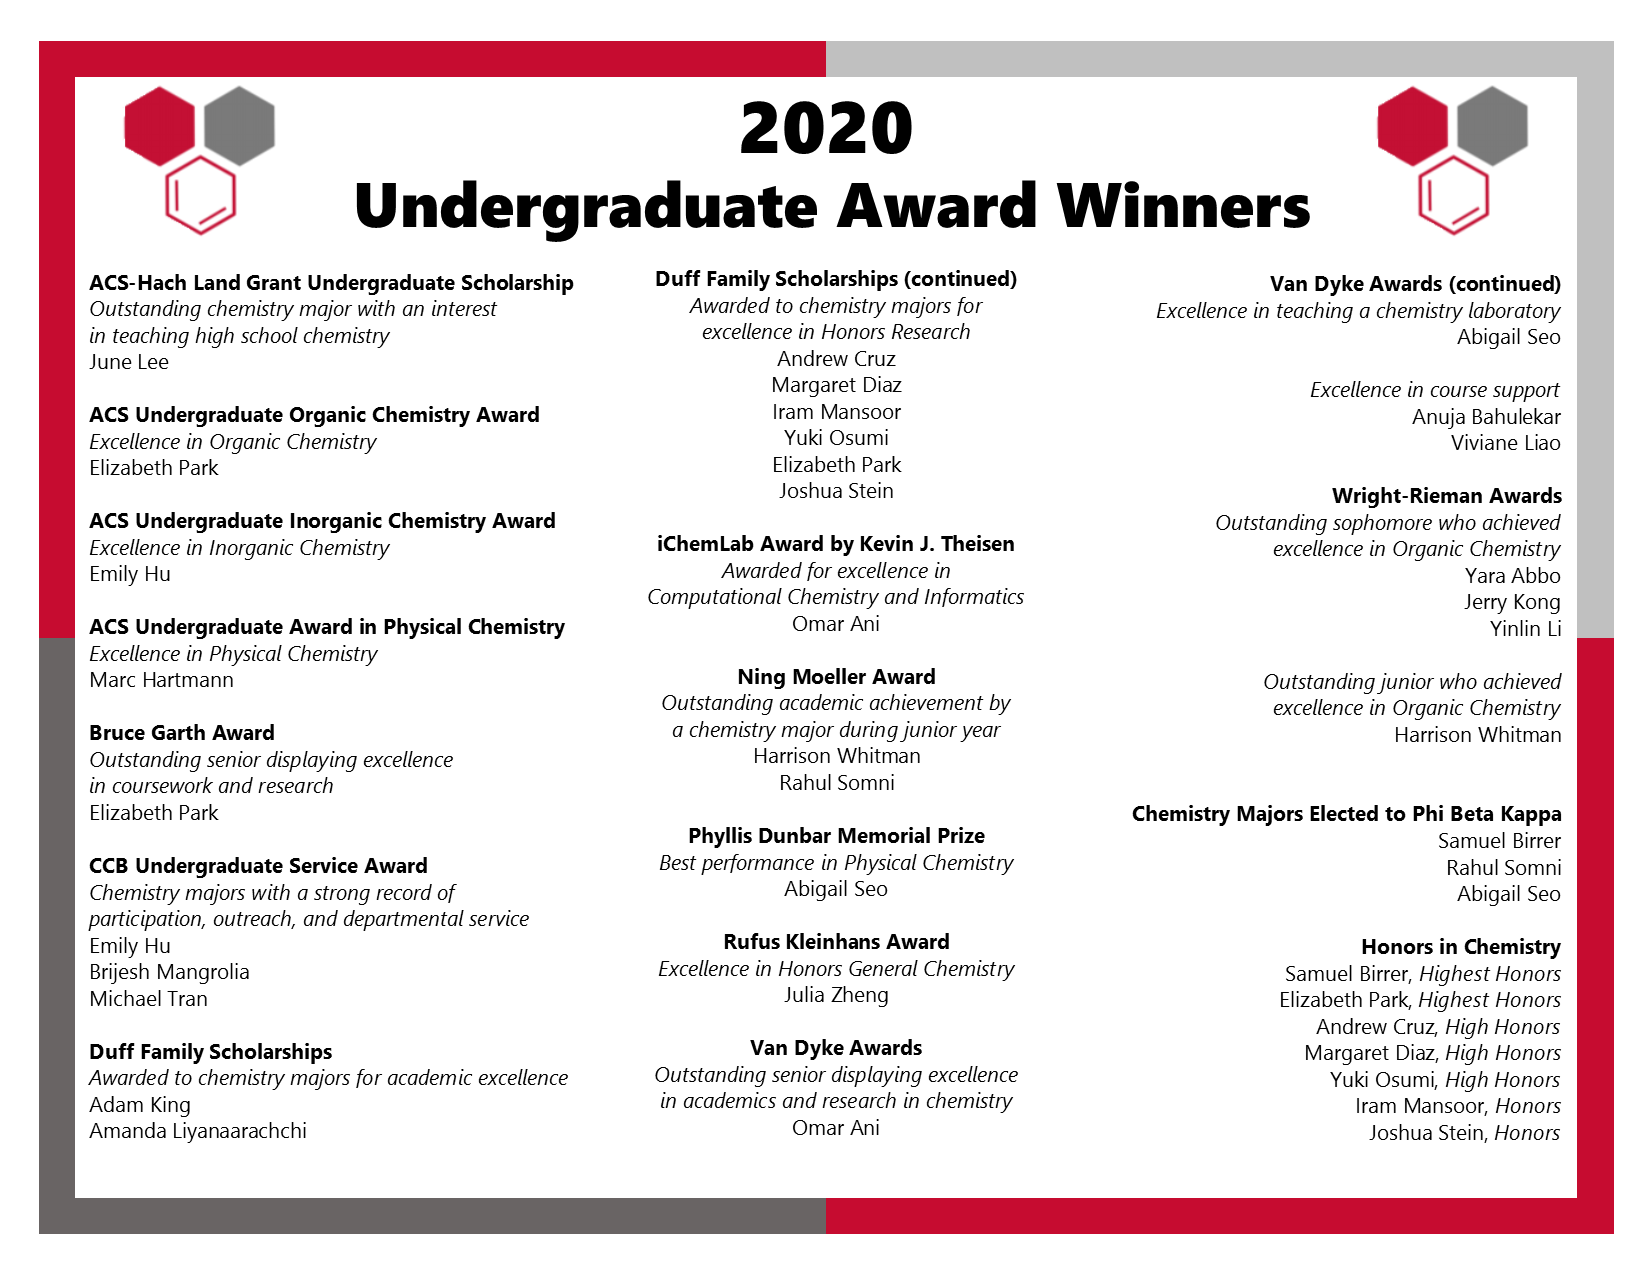 2020 Undergraduate Awards